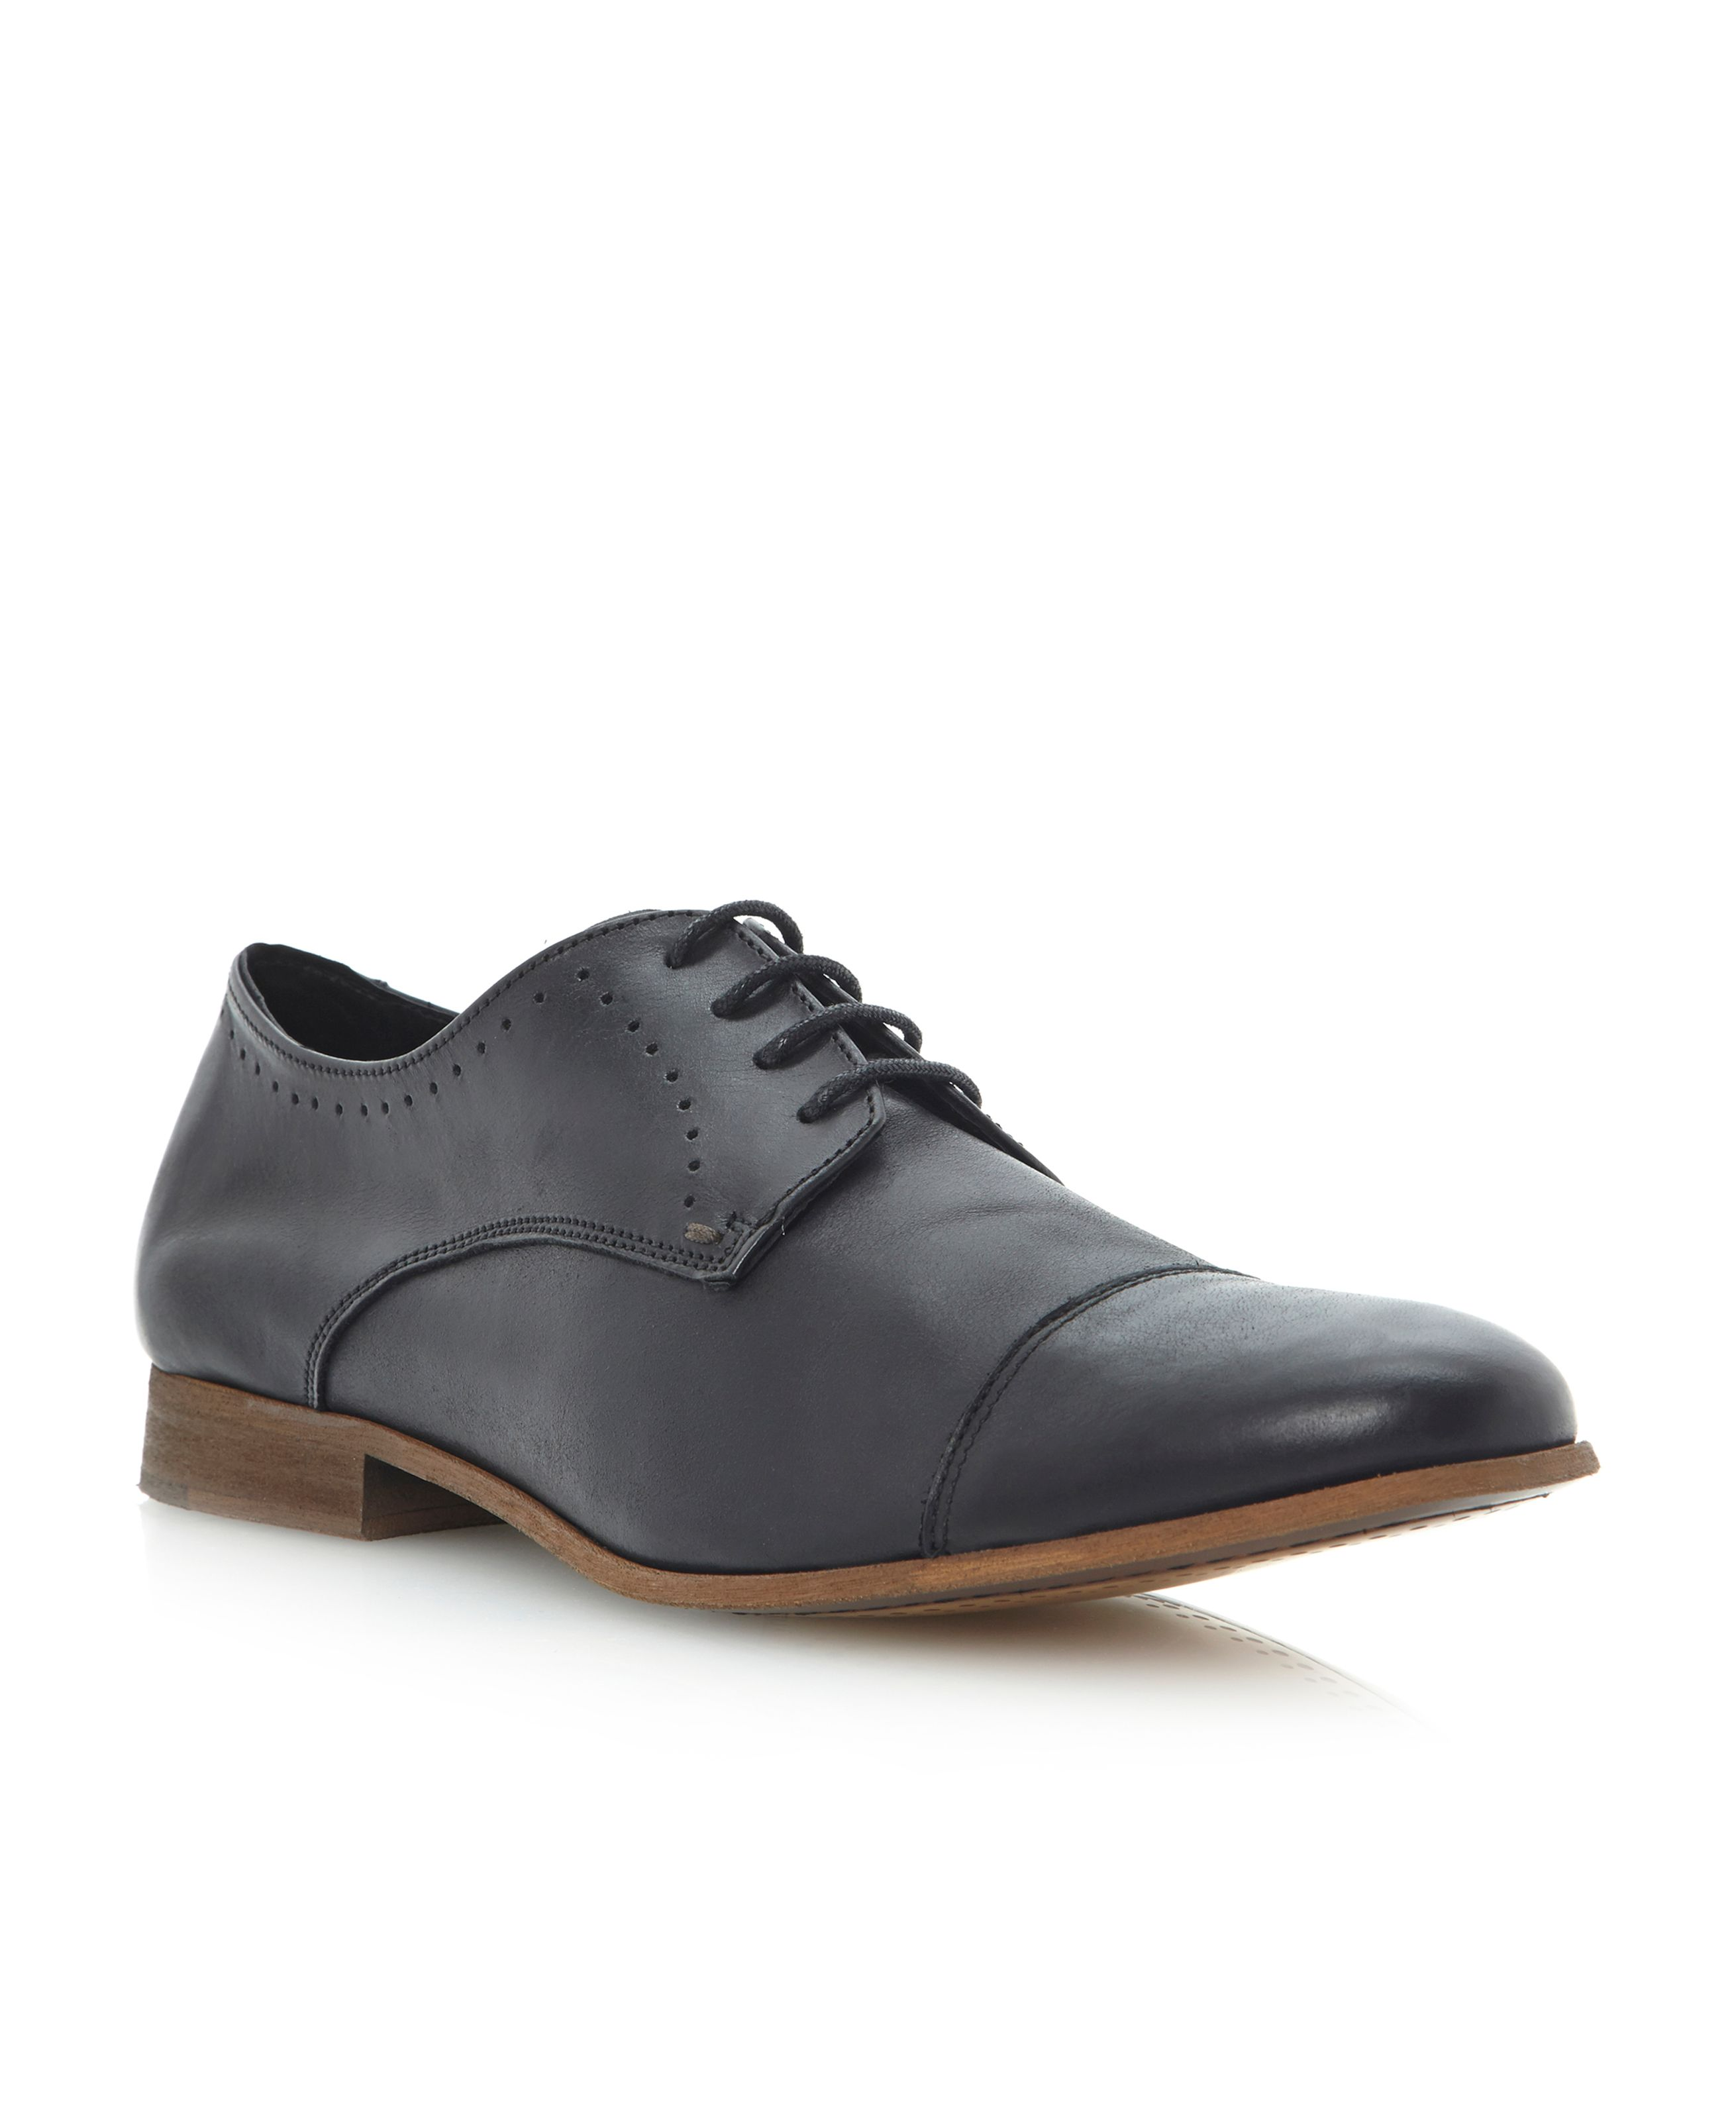 Avalanche toecap gibson lace shoes